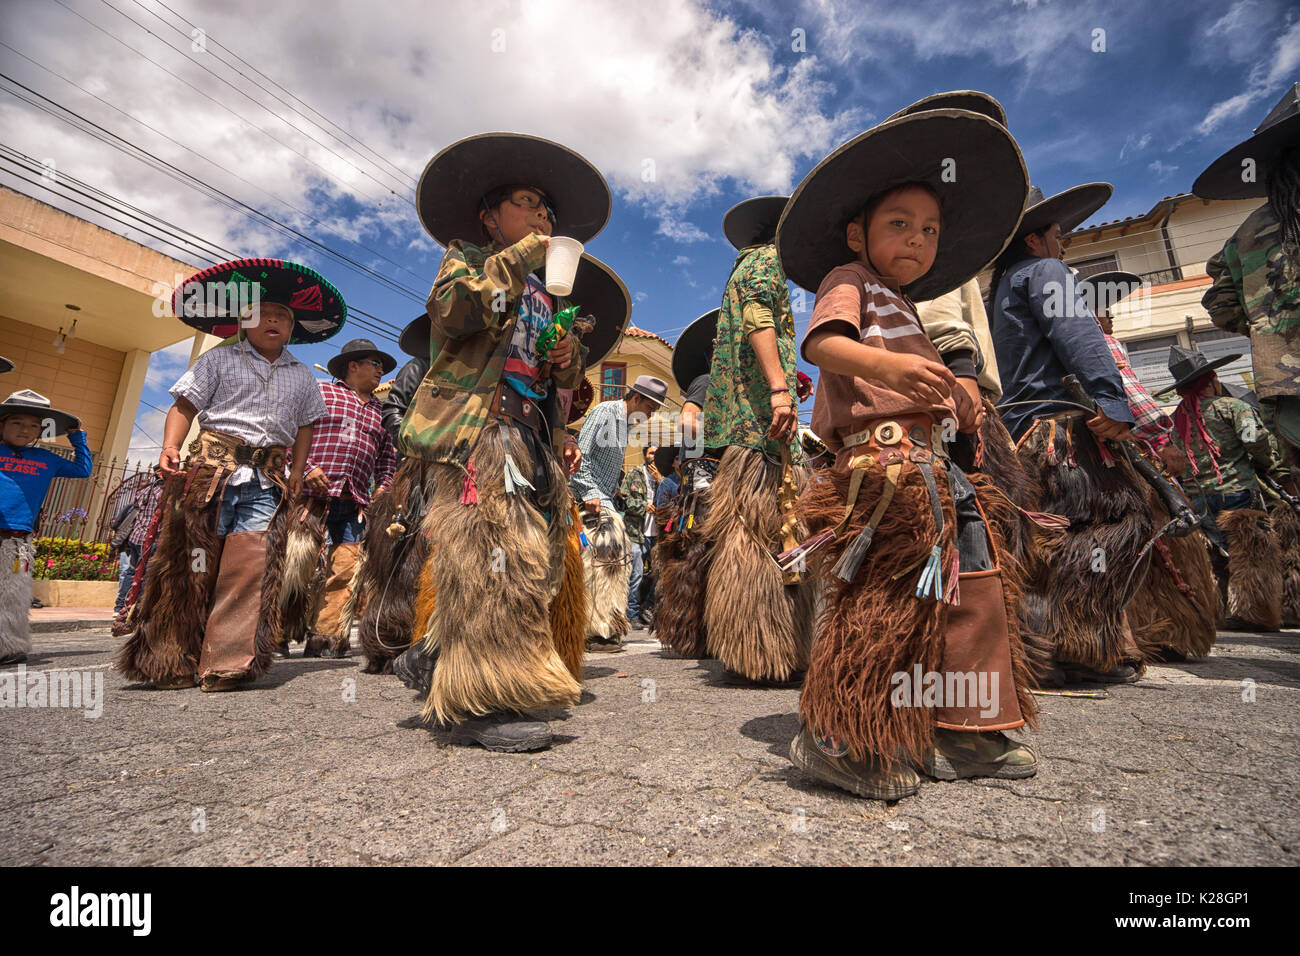 June 25, 2017 Cotacachi, Ecuador: all ages are represented at the Inti Raymi parade in the indigenous kichwa town - Stock Image